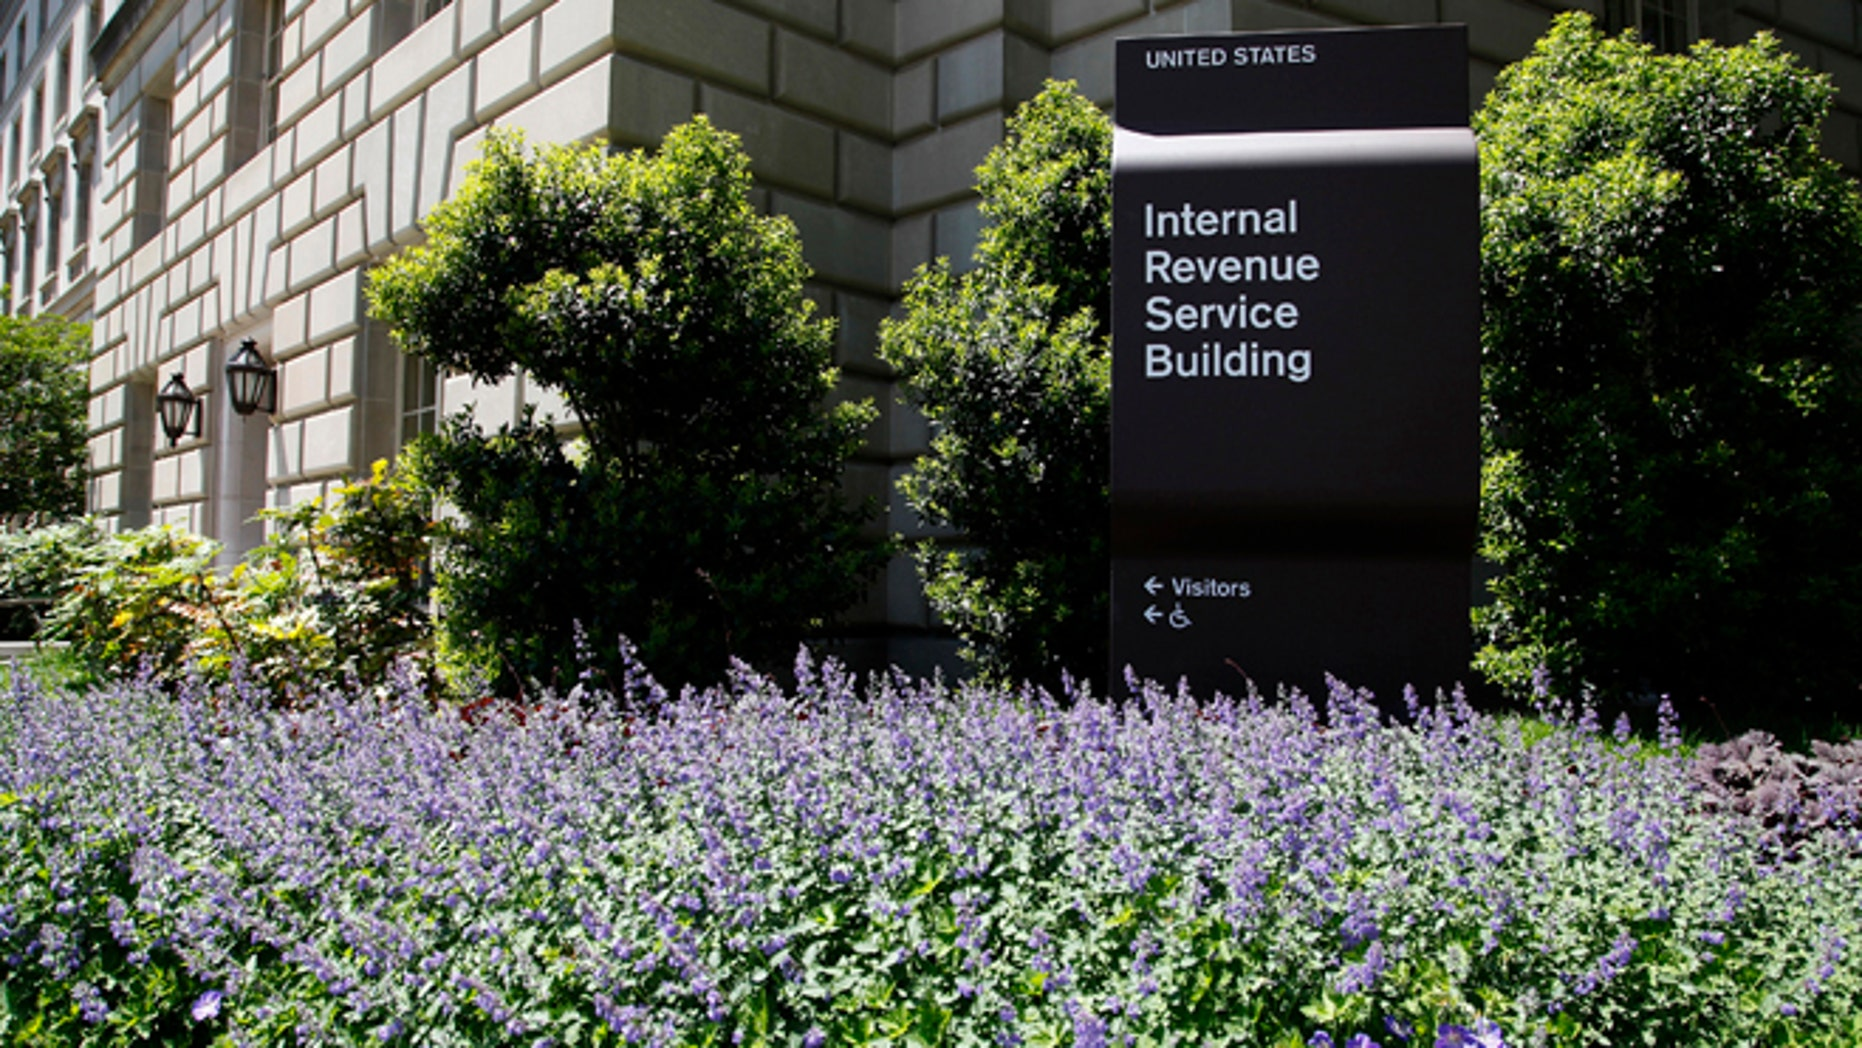 May 14, 2013: A general view of the Internal Revenue Service (IRS) Building in Washington.